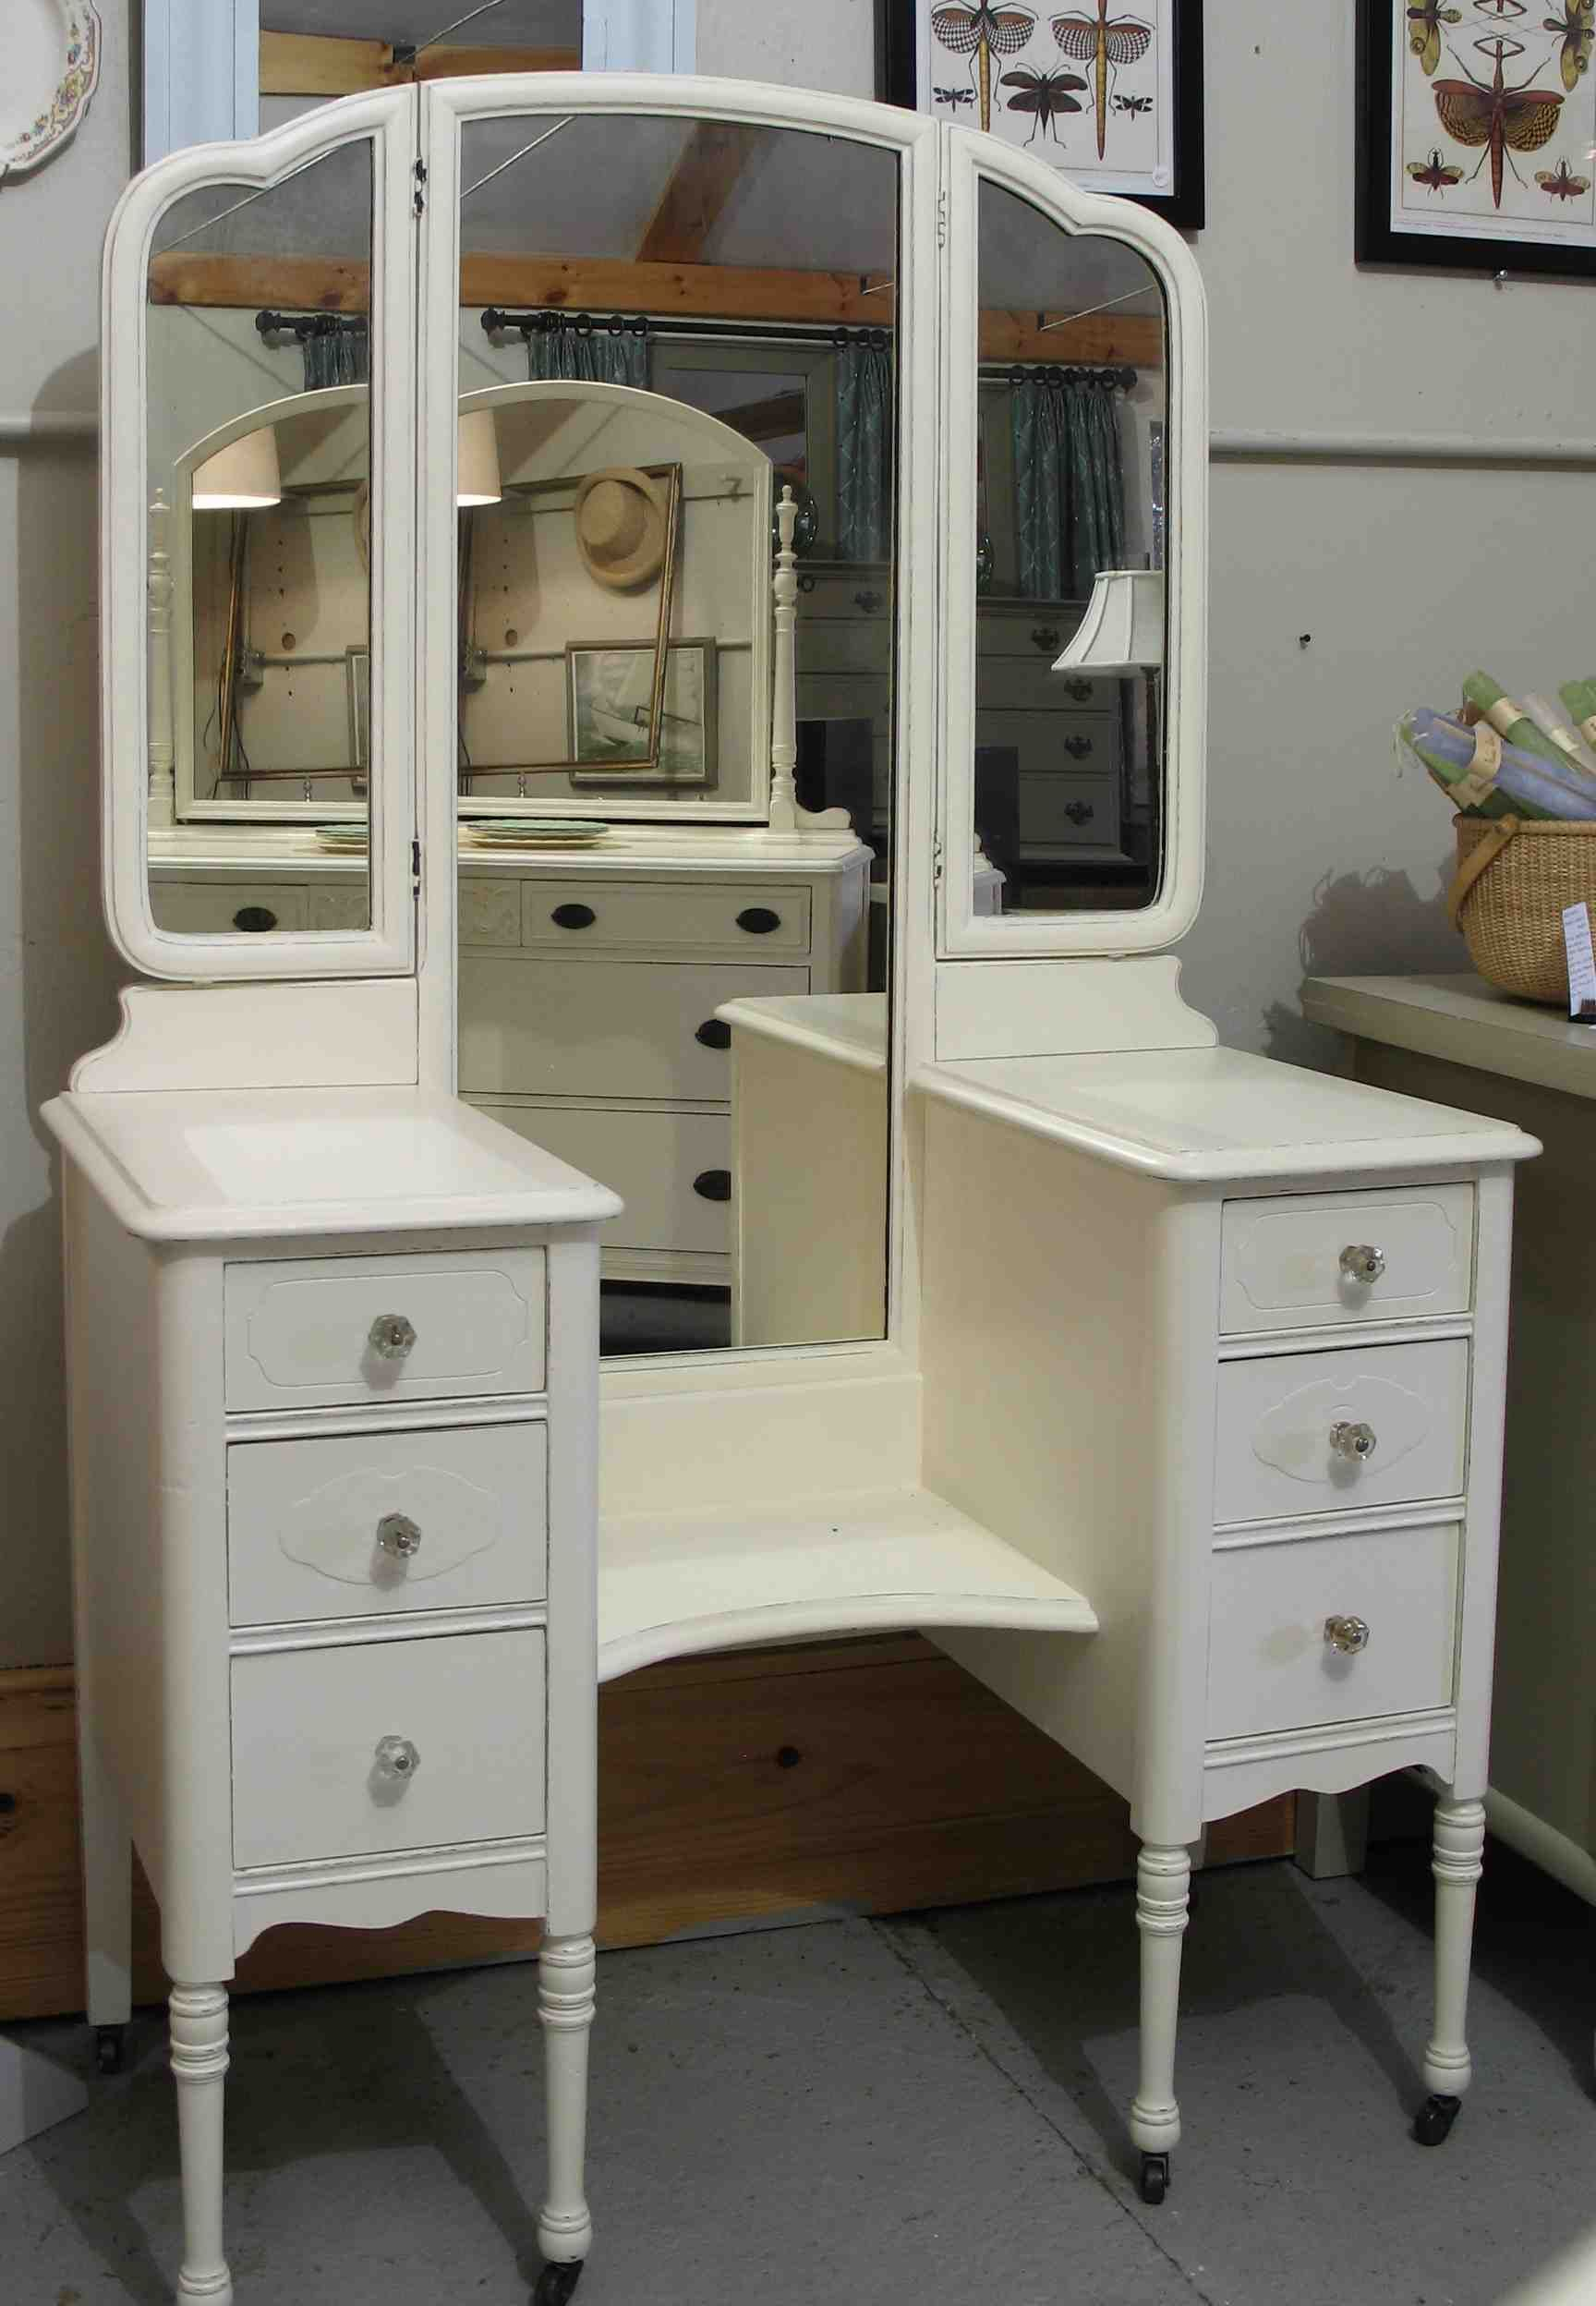 Beautiful Furniture Old And Vintage Wooden Makeup Vanity Table  With 3 Fold Mirror Set And Shelves Between Double Drawer Stand With Wheels Painted With White U2026